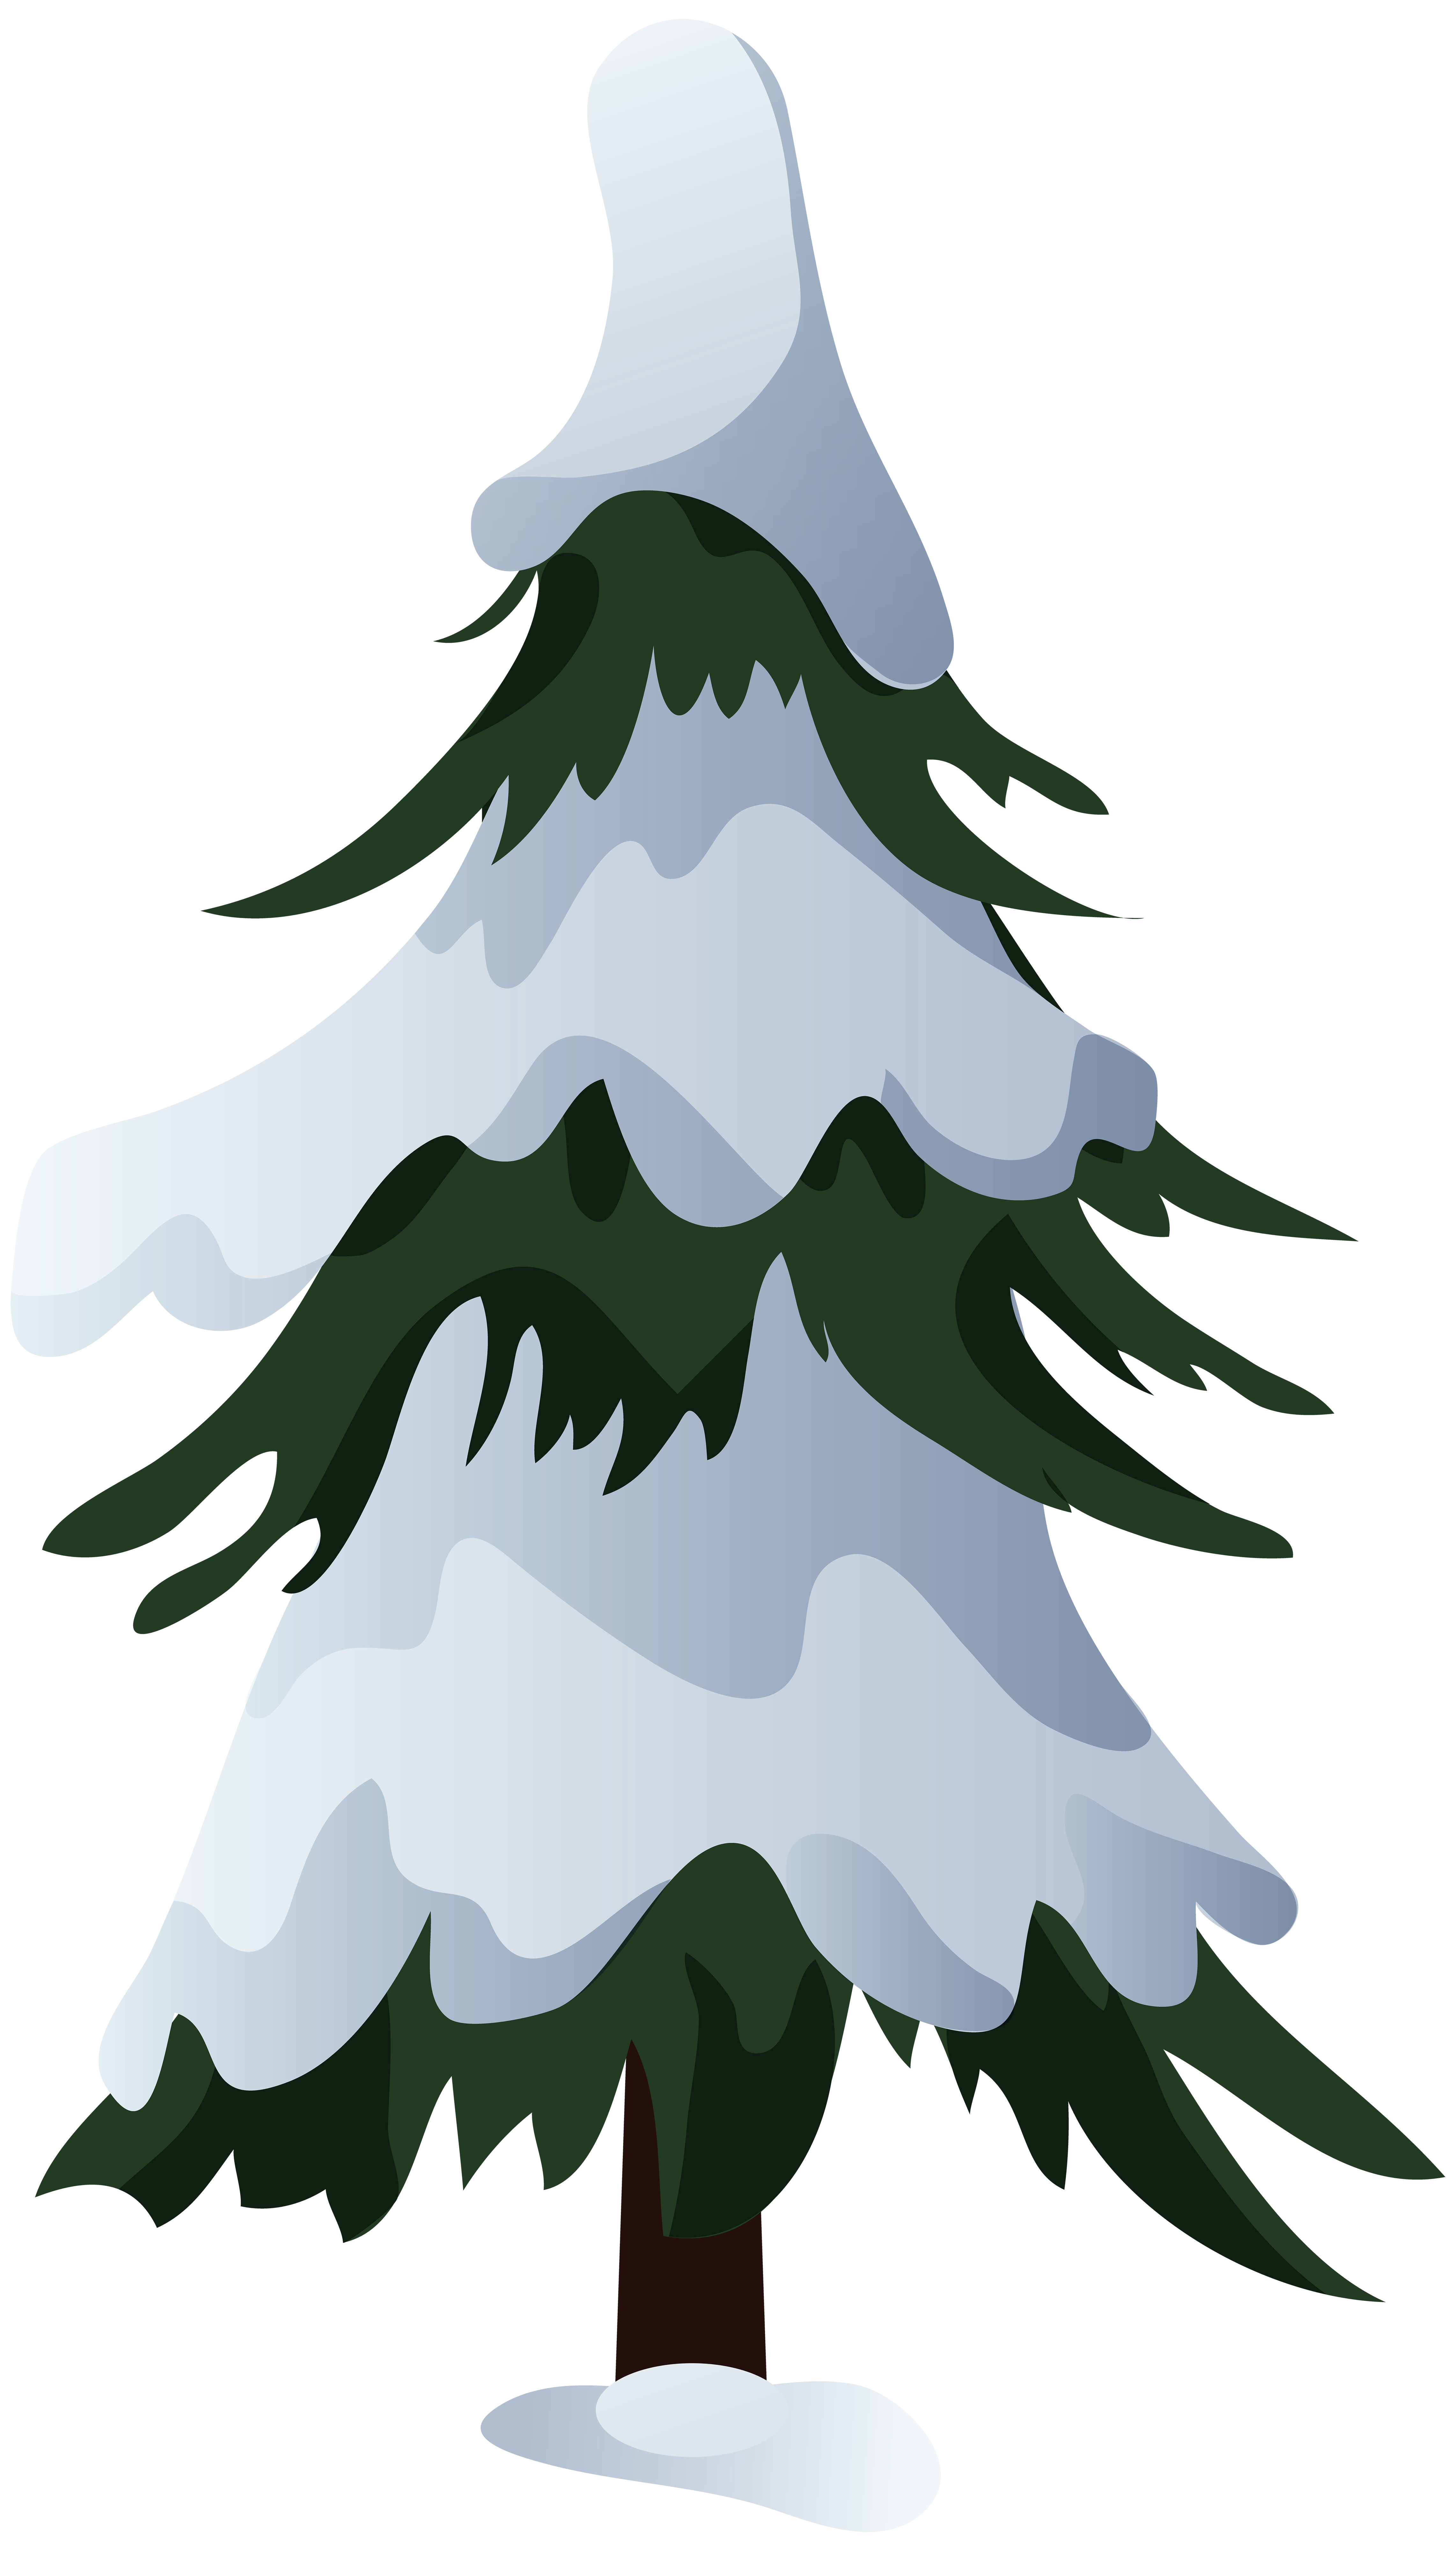 Snow tree clipart jpg free download Snowy Pine Tree PNG Clip Art | Gallery Yopriceville - High-Quality ... jpg free download